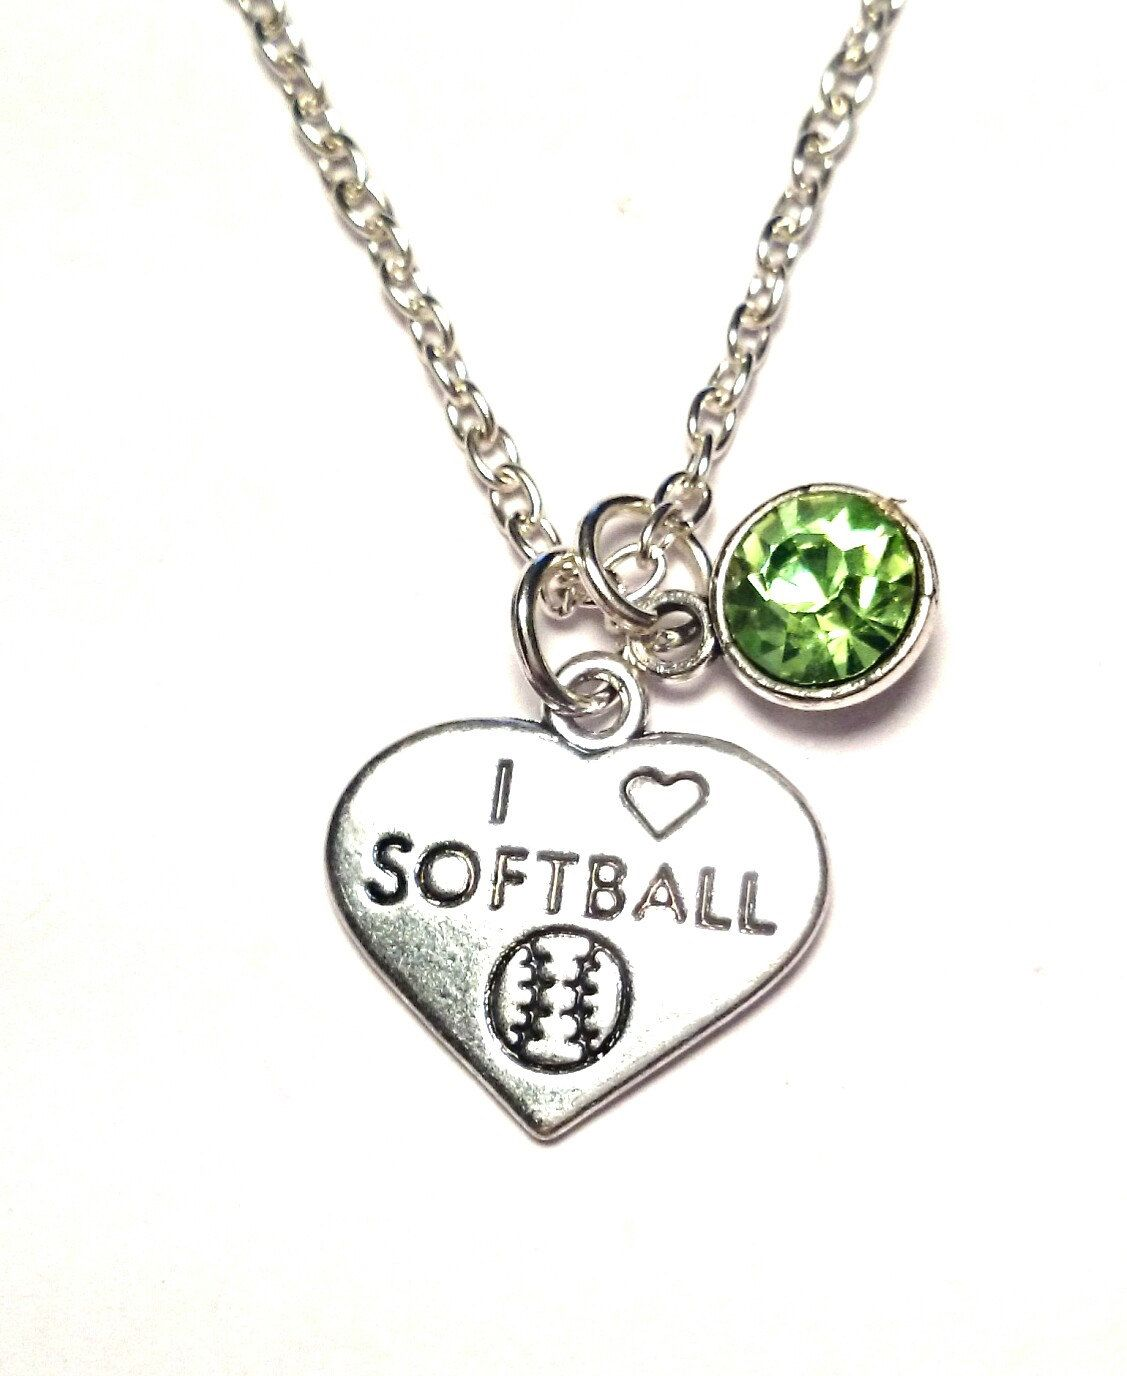 necklace softball com dp pendant steel jewelry daughter amazon perfect idea gift dad for stainless from girl